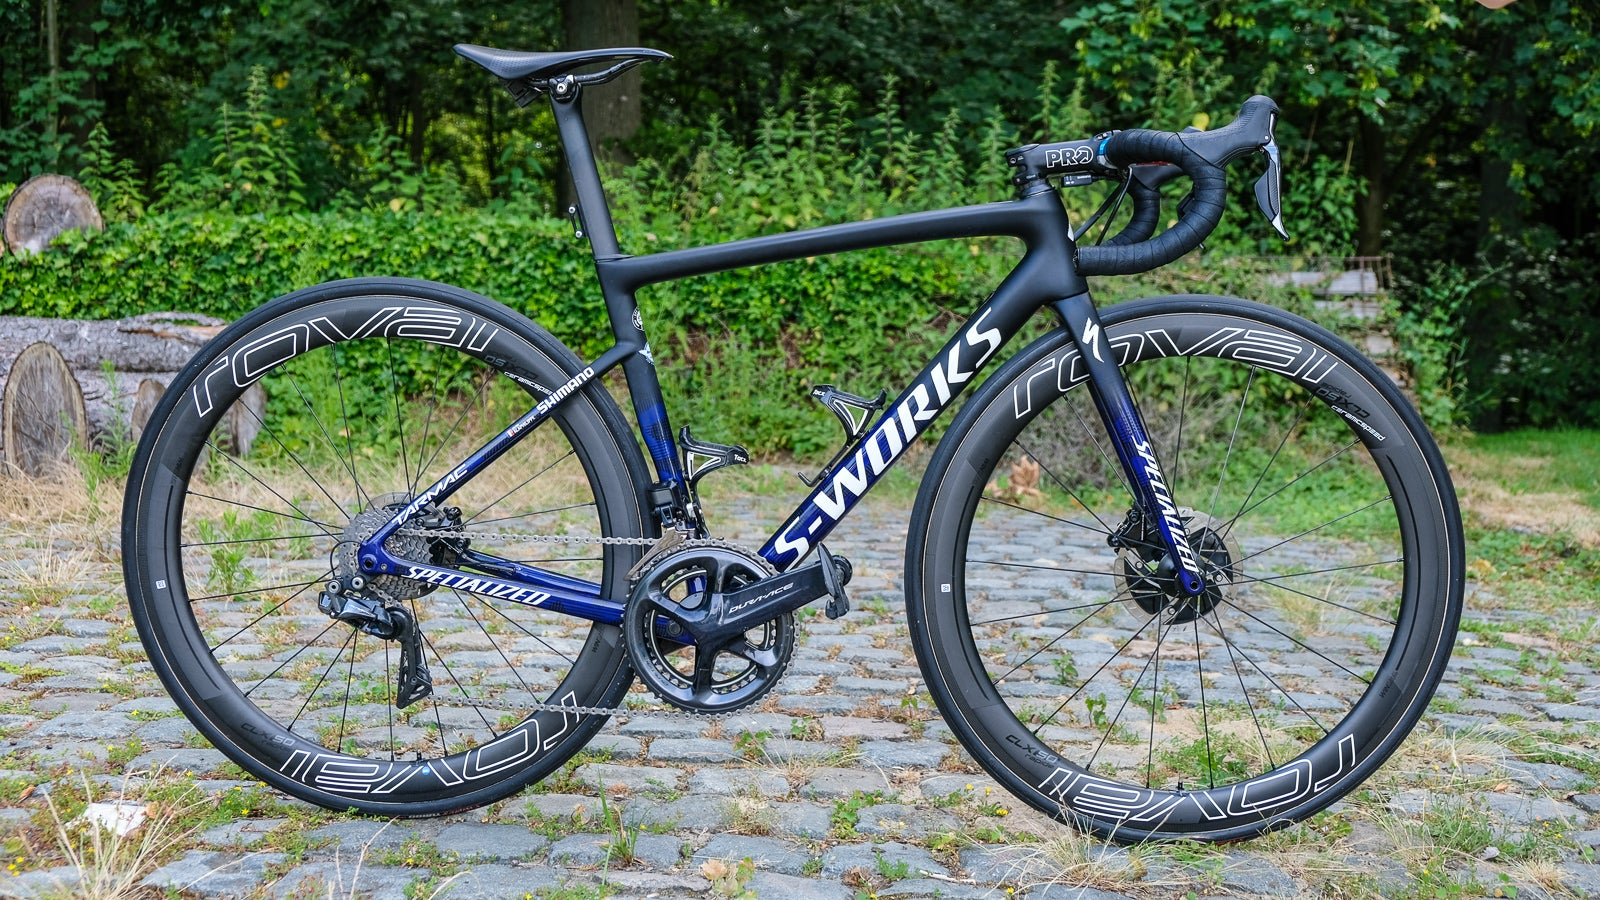 Pro Bike Gallery Julian Alaphilippe S Specialized S Works Tarmac Velonews Com